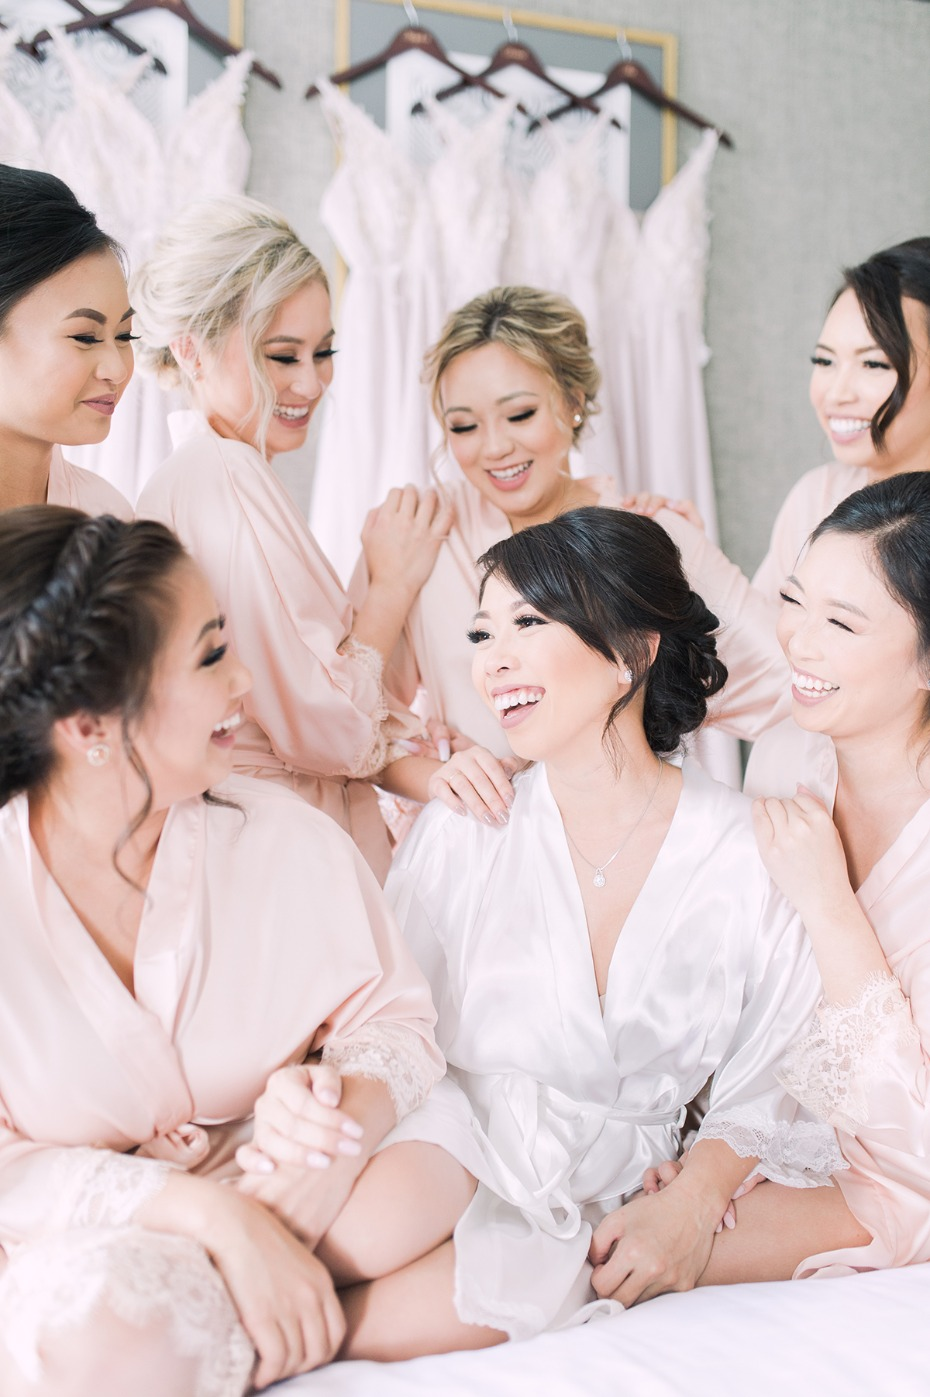 a bride and her bridesmaids getting wedding ready